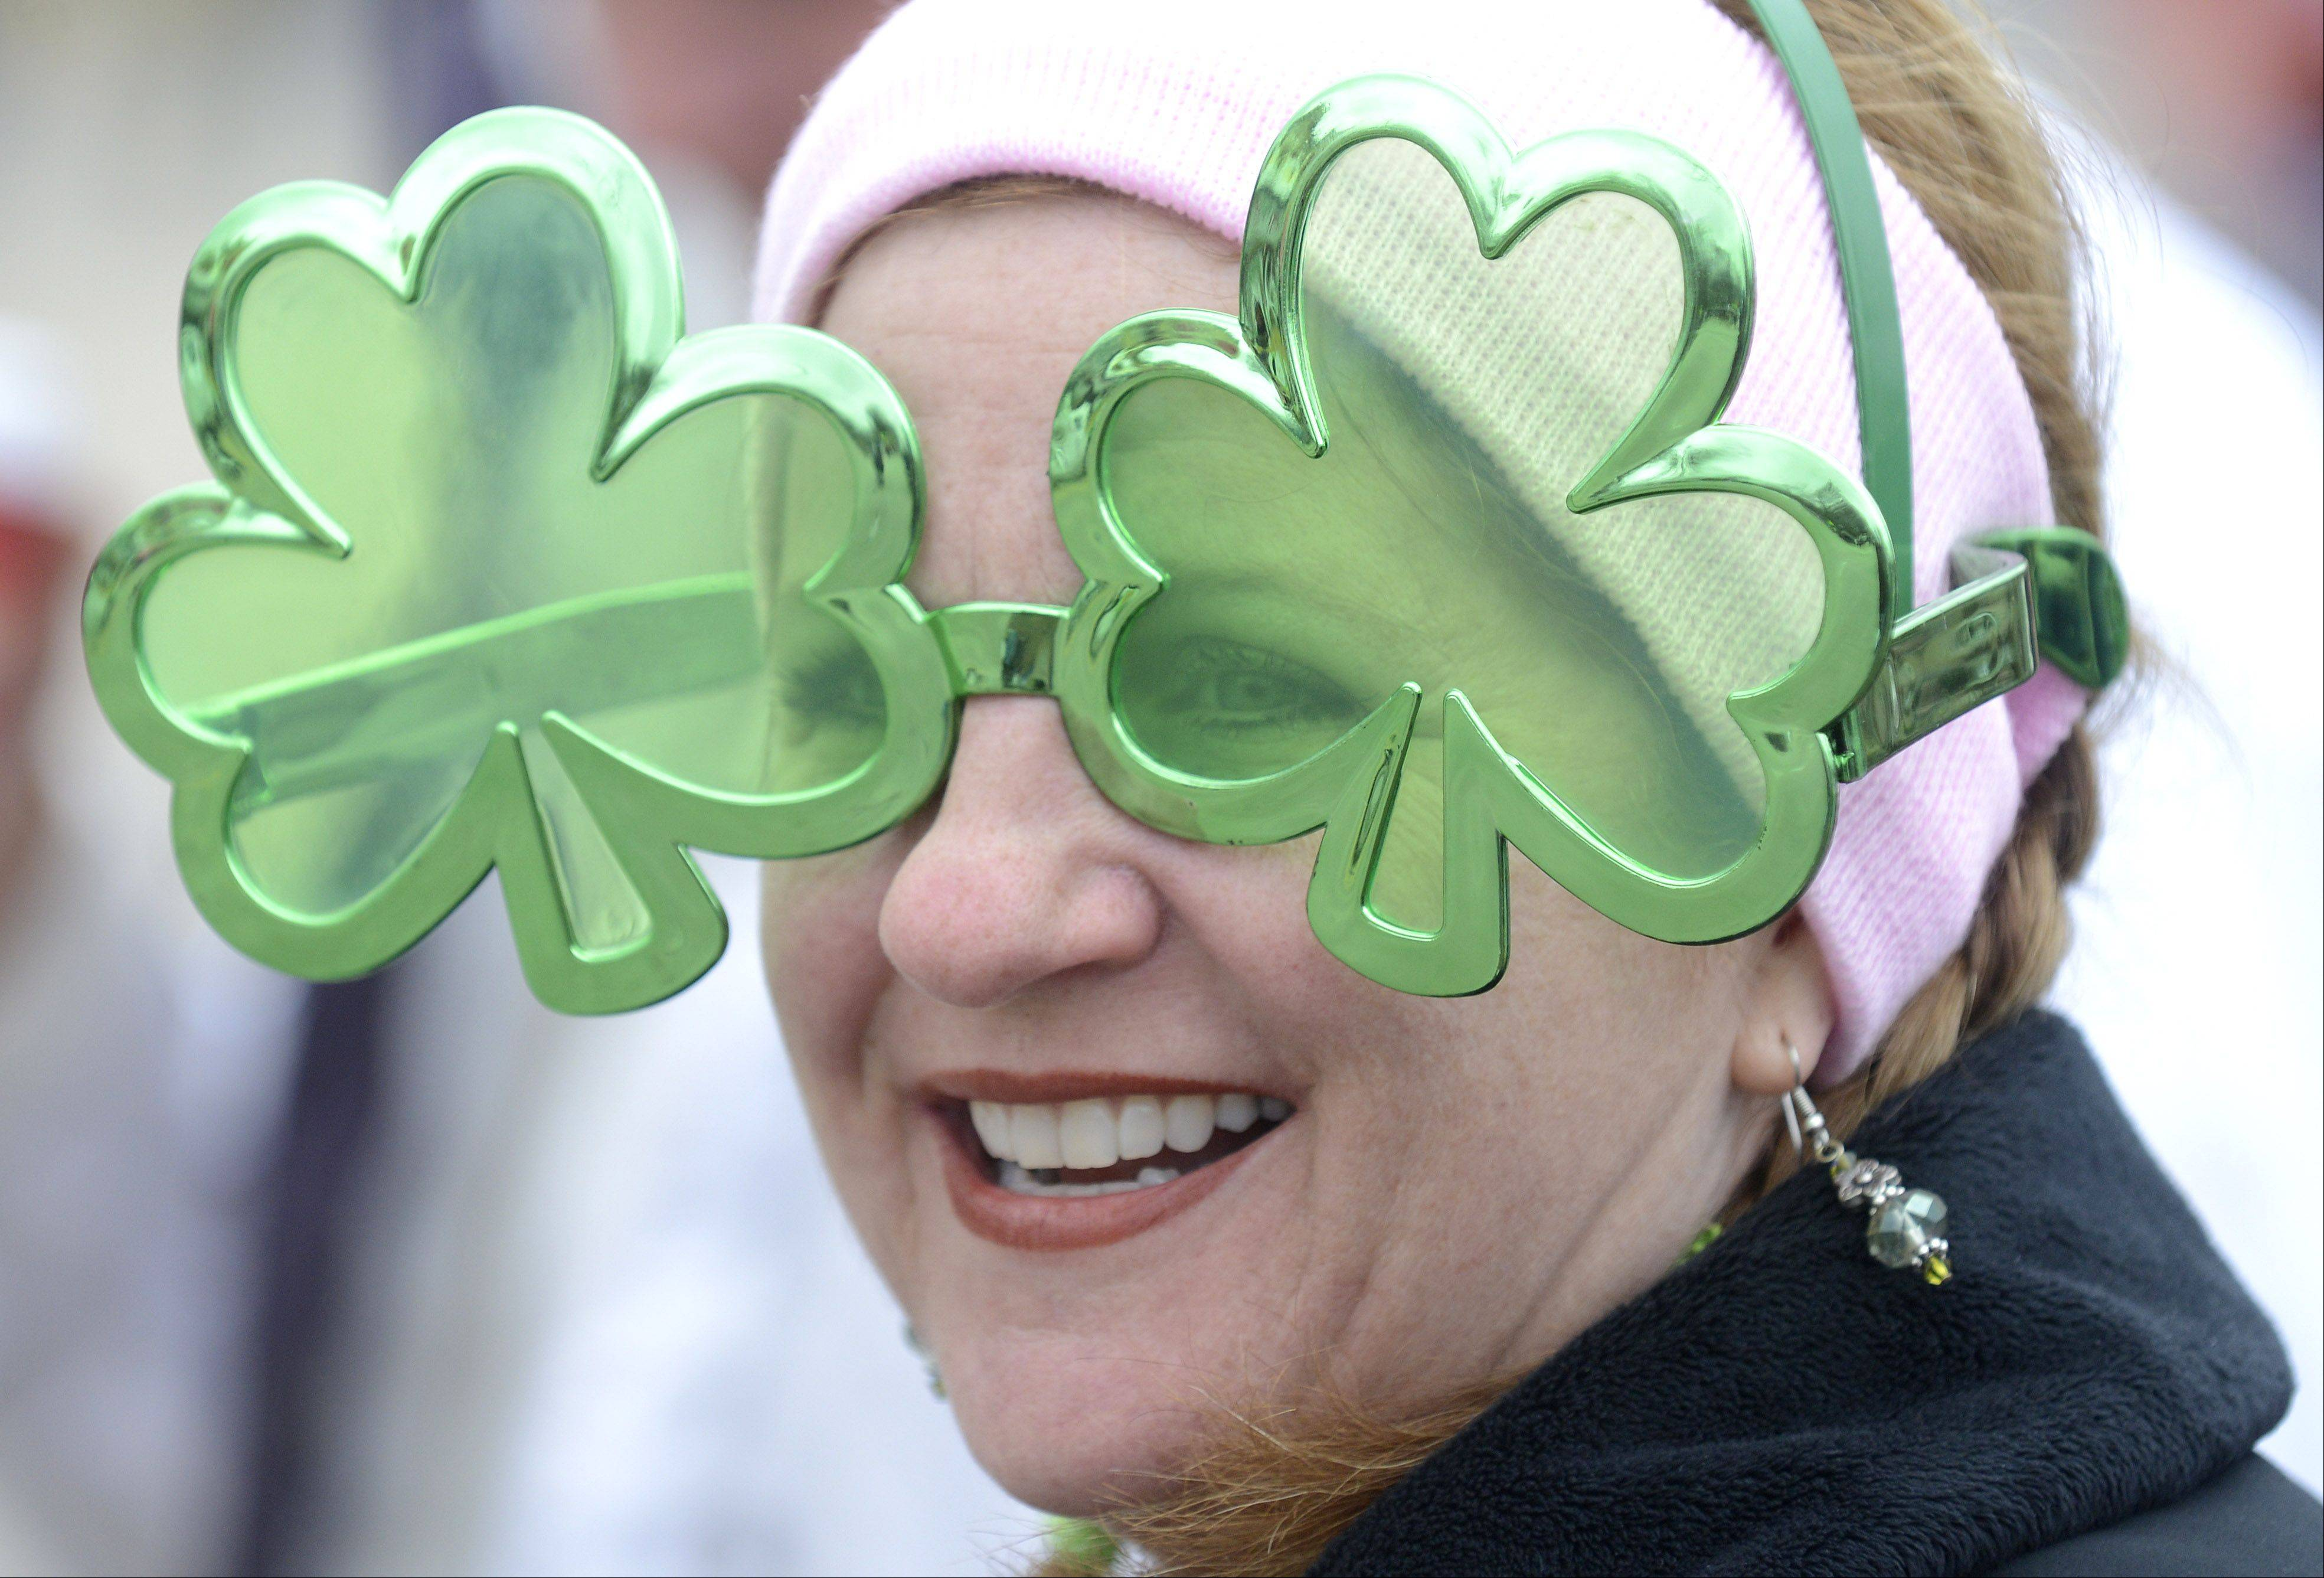 Rond Baird of St. Charles wears the funny shamrock glasses her son, Johnny, 6, did not want to wear at the St. Patrick's Day parade in St. Charles on Saturday.